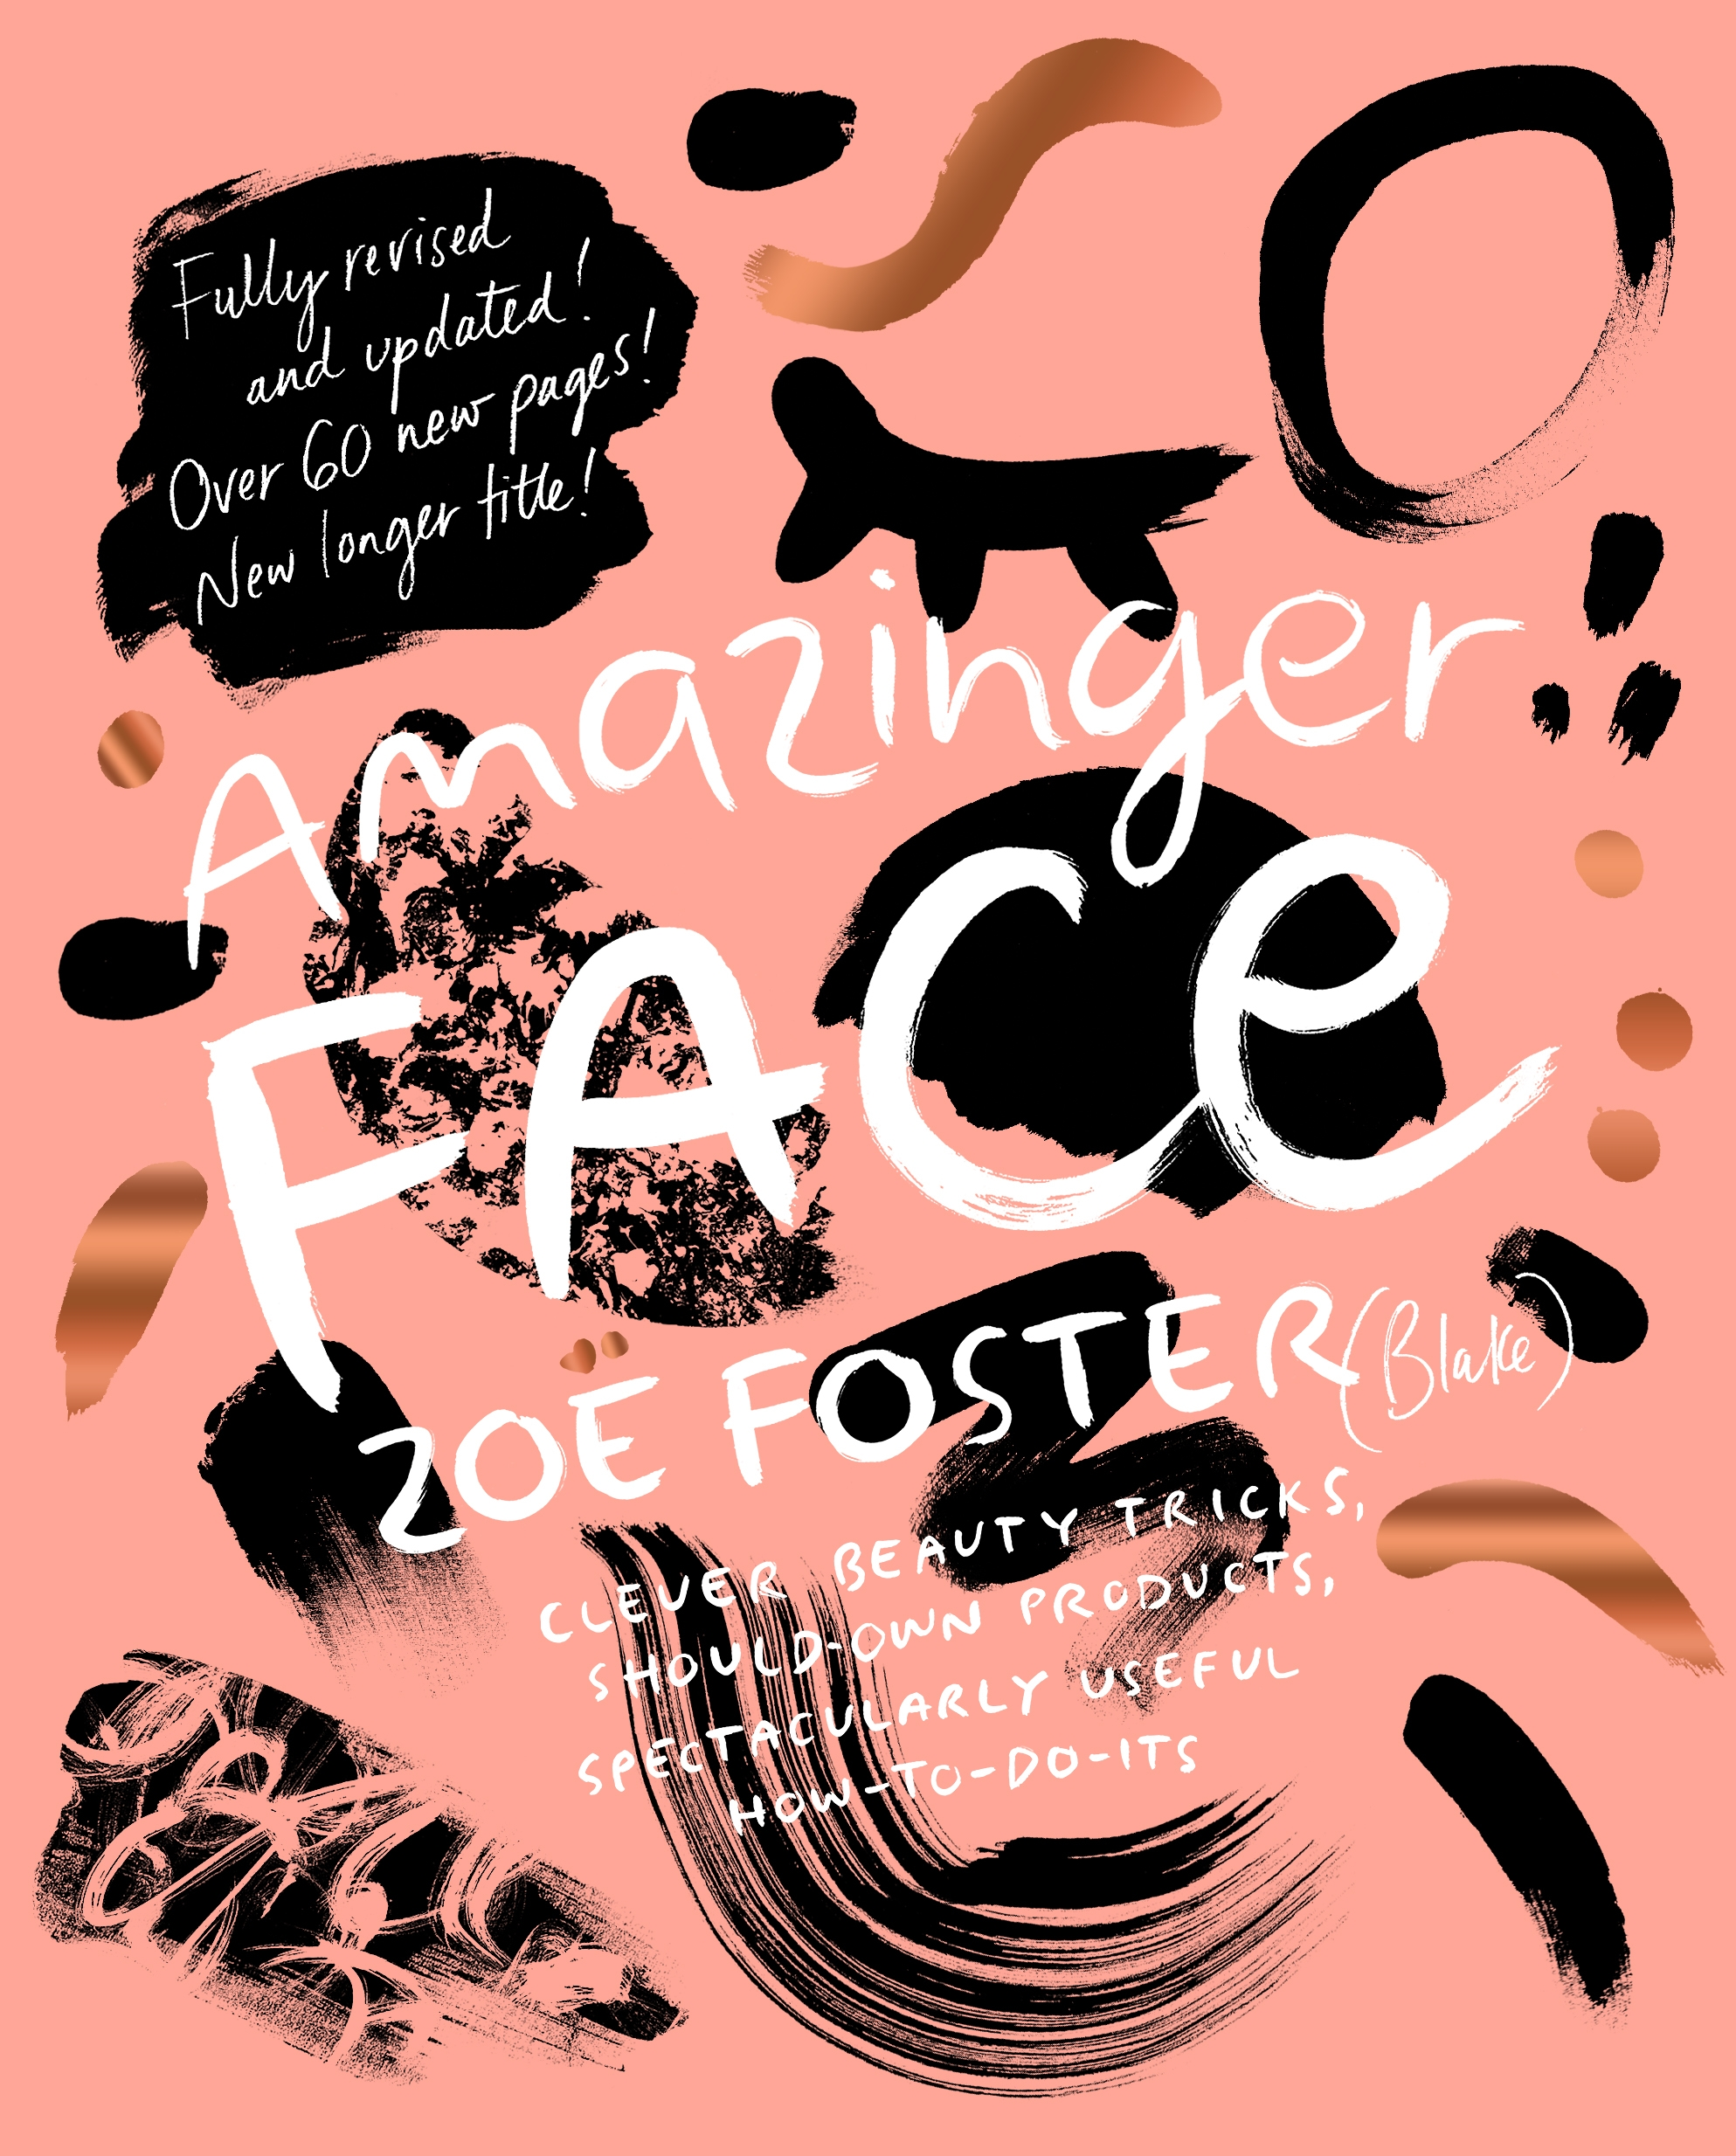 Amazinger Face by Zoe Foster, ISBN: 9780670078233